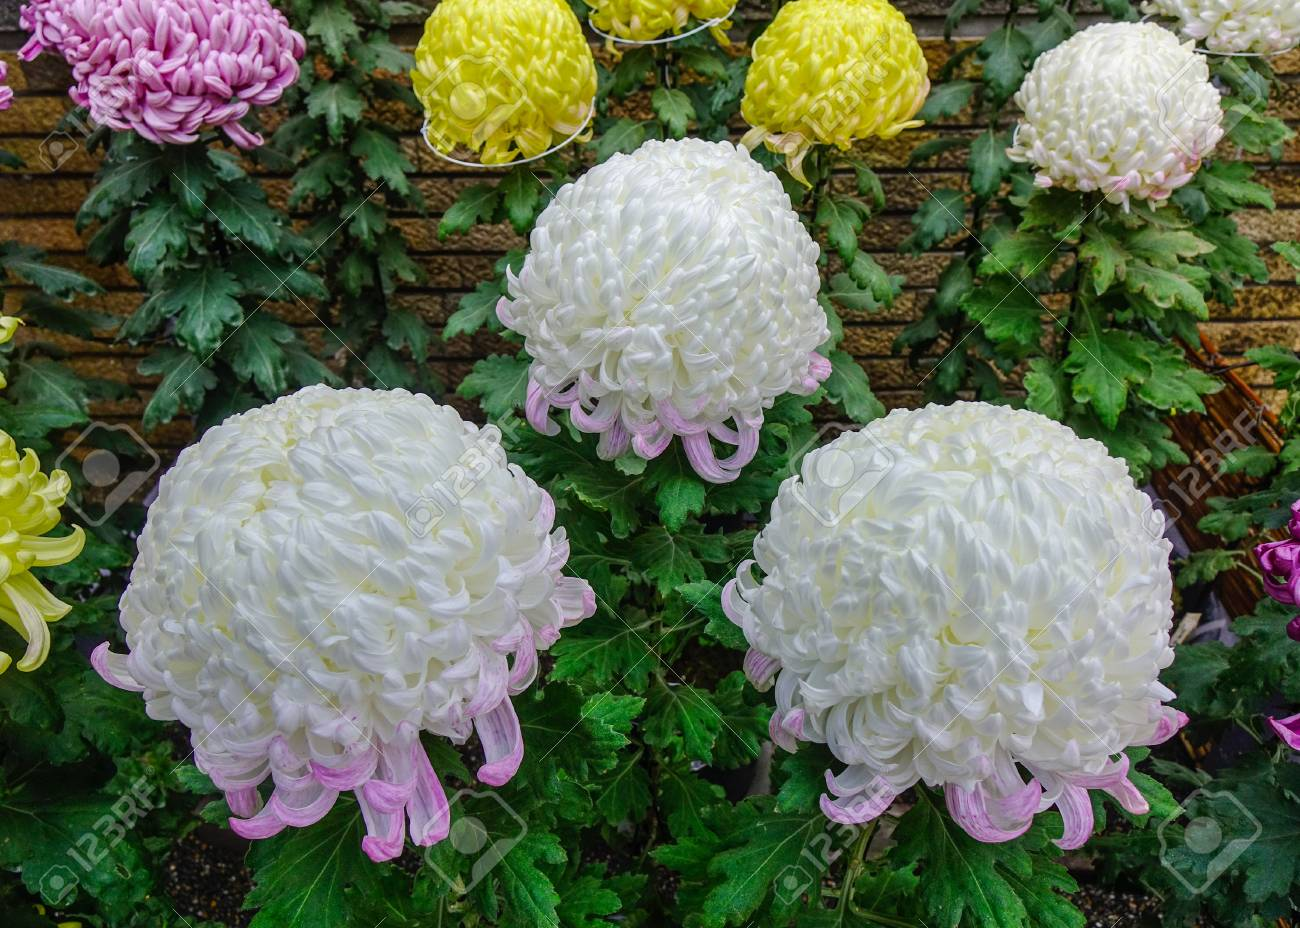 White Japanese Chrysanthemum Flowers Blooming At Autumn In The